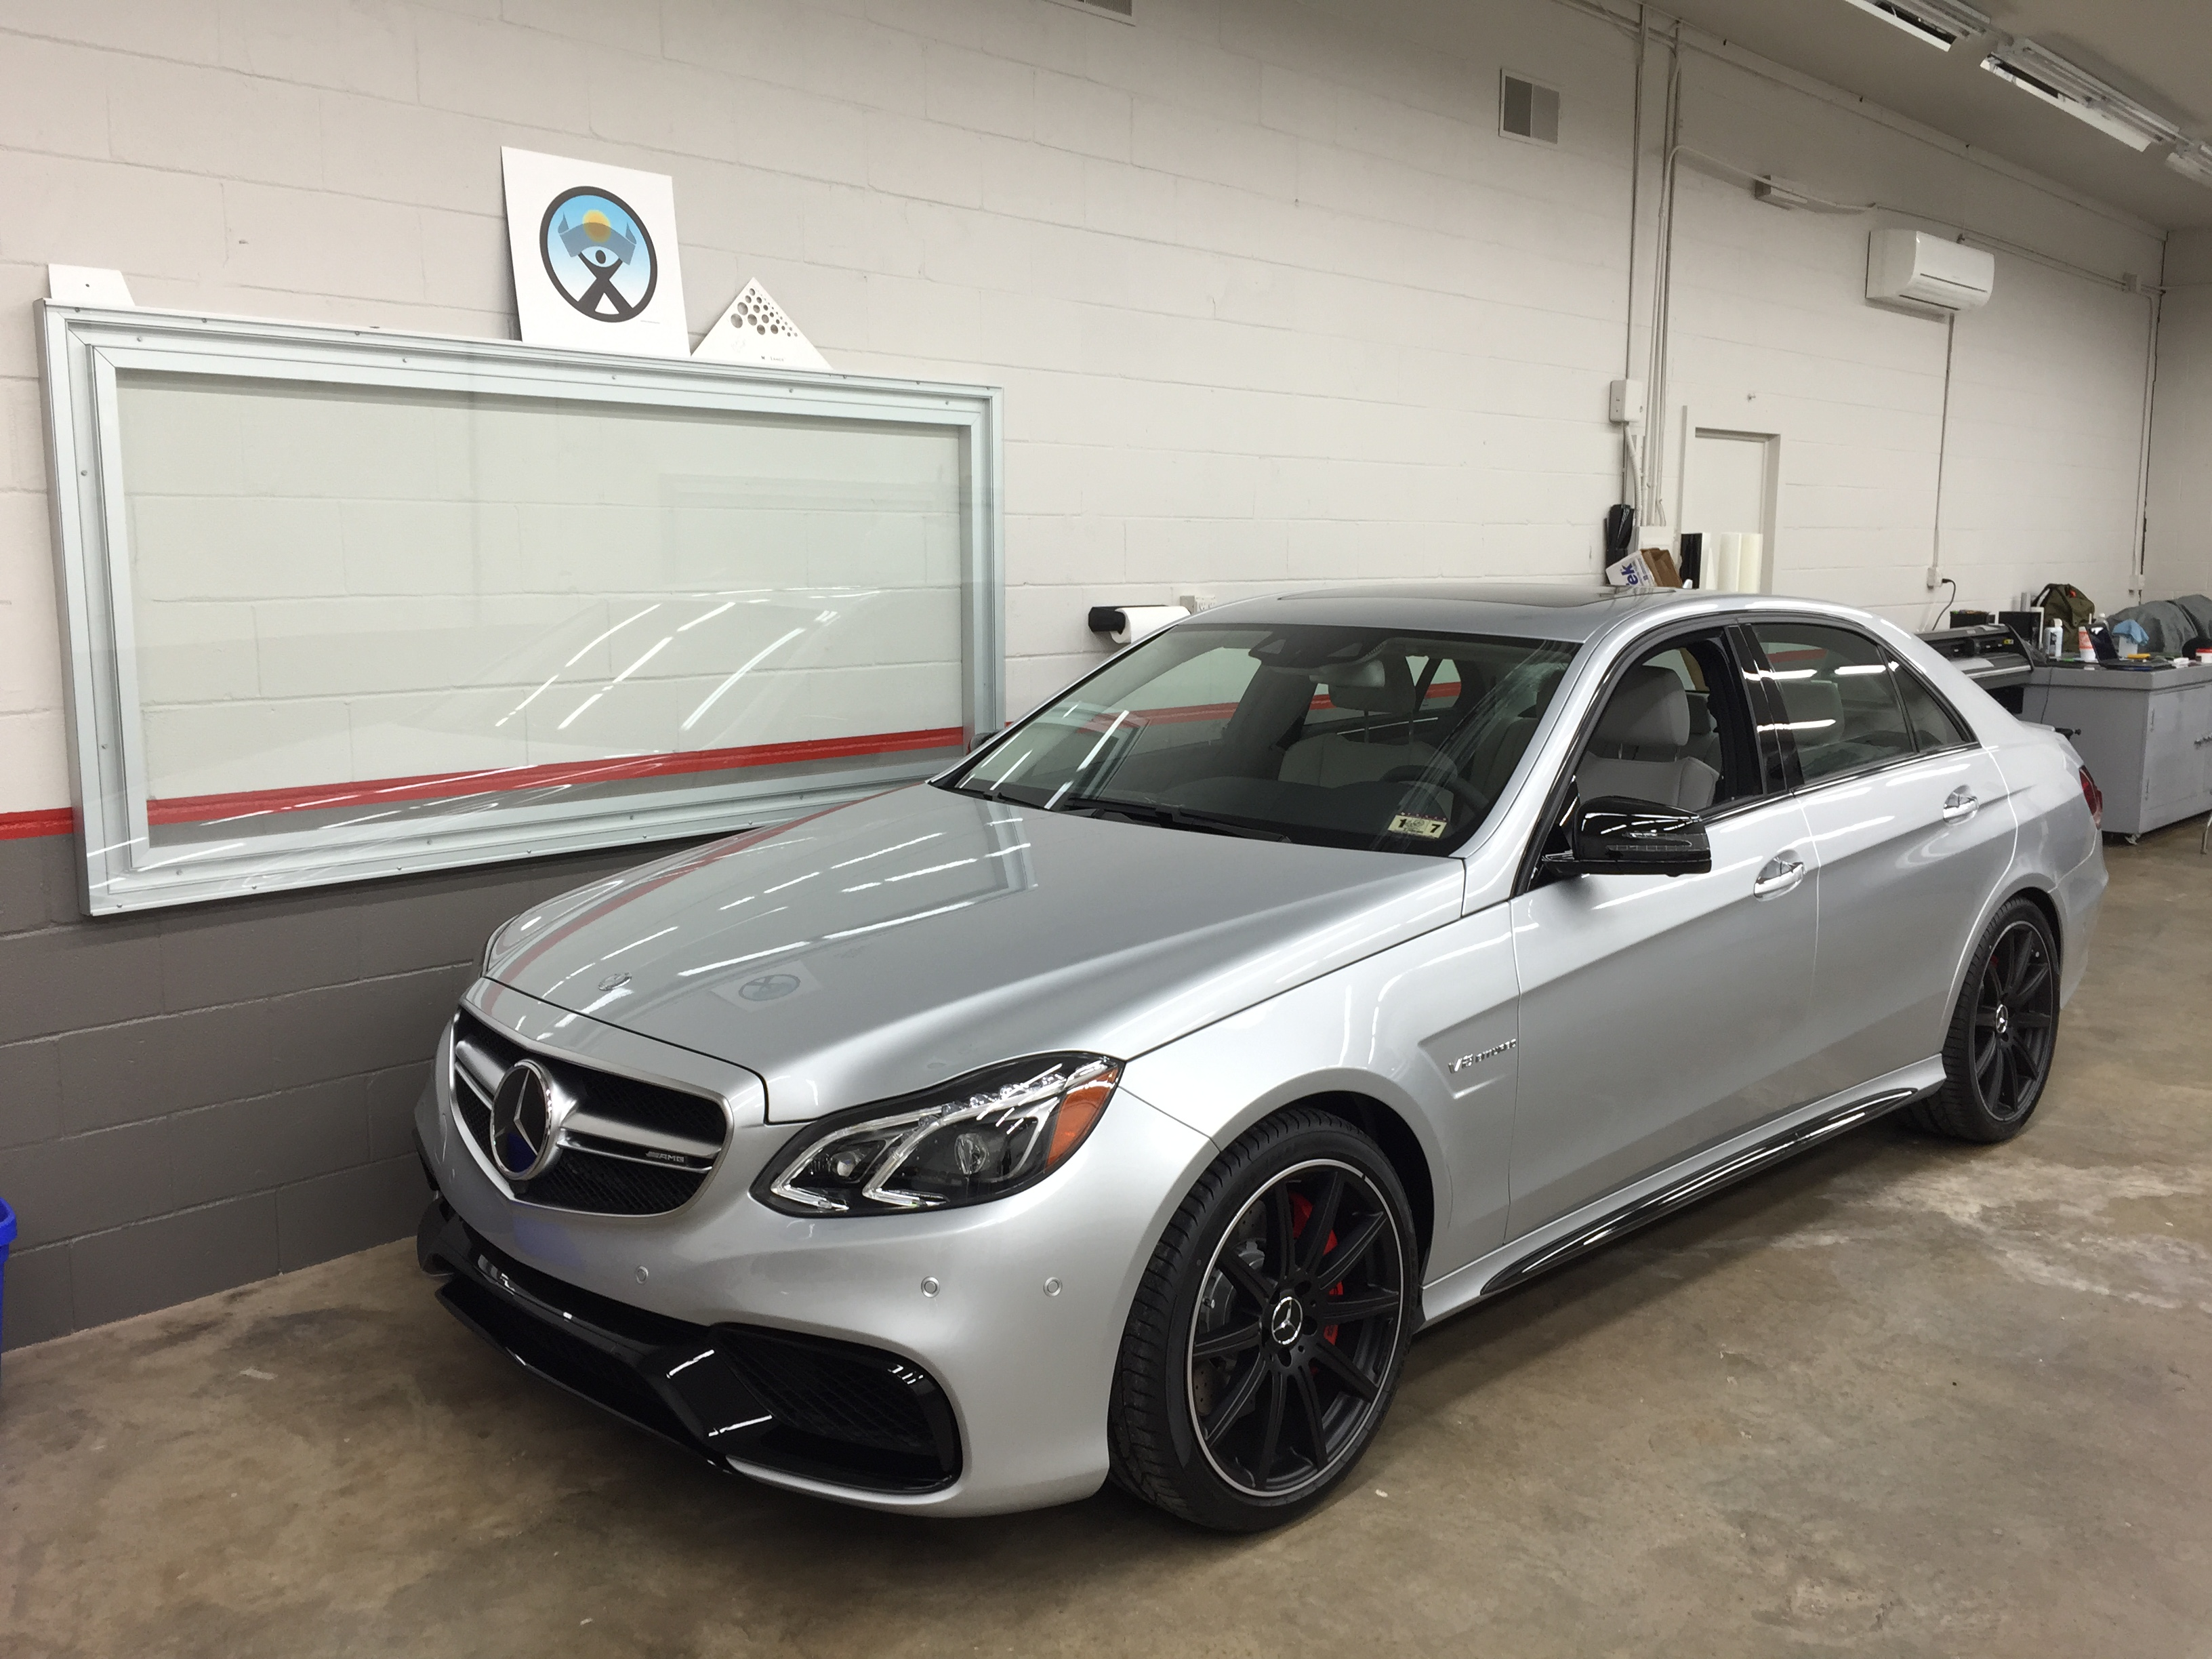 Silver Mercedes Benz SUV Paint Protection applied